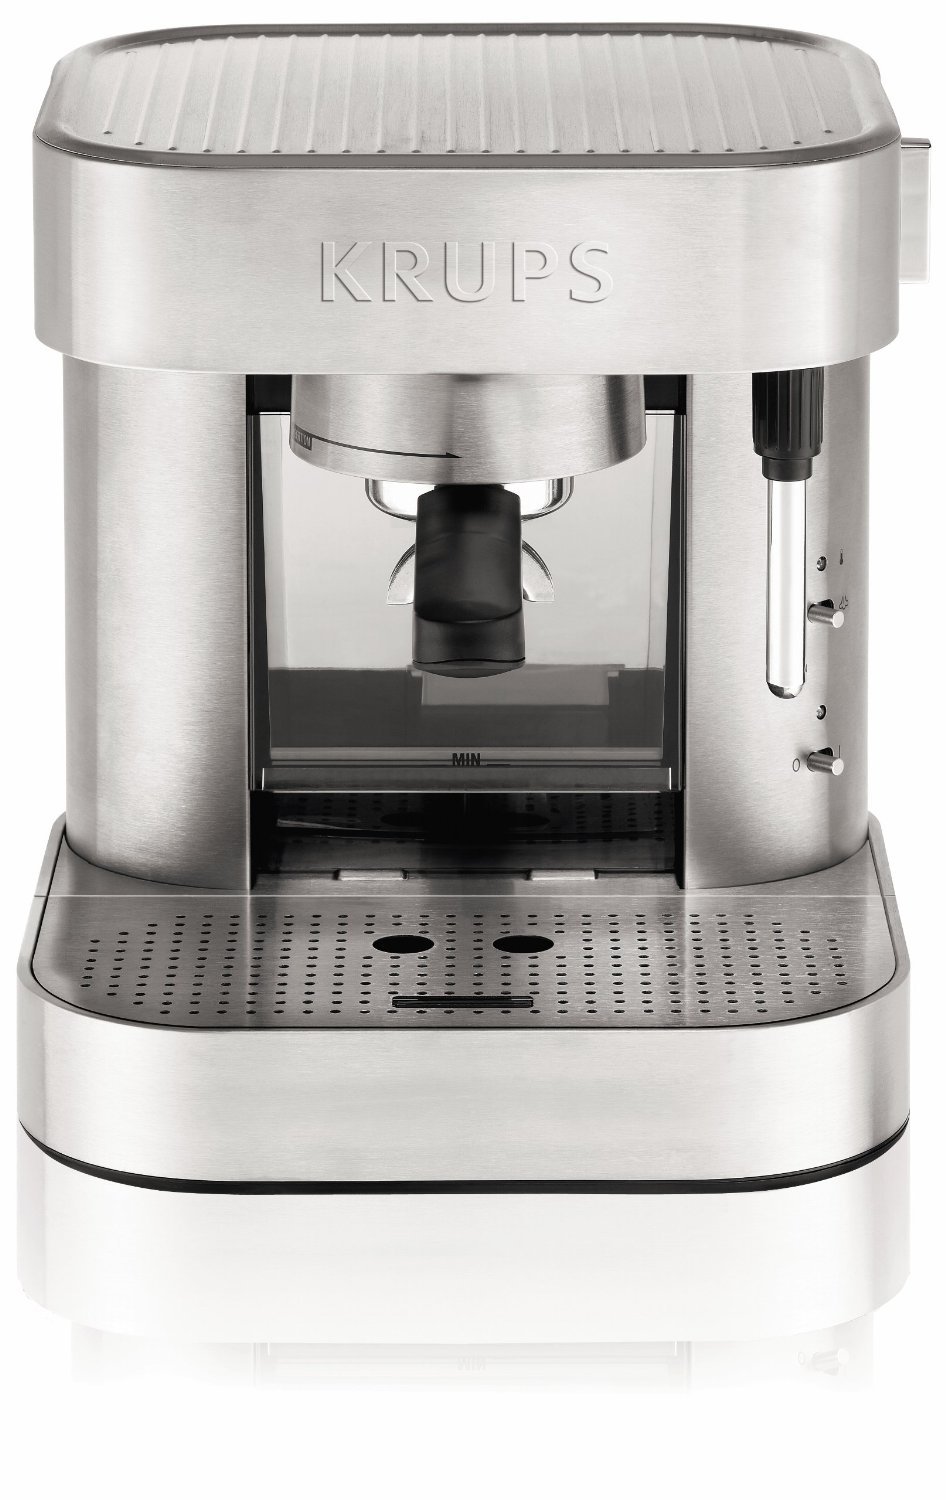 krups xp601050 manual pump espresso machine review. Black Bedroom Furniture Sets. Home Design Ideas